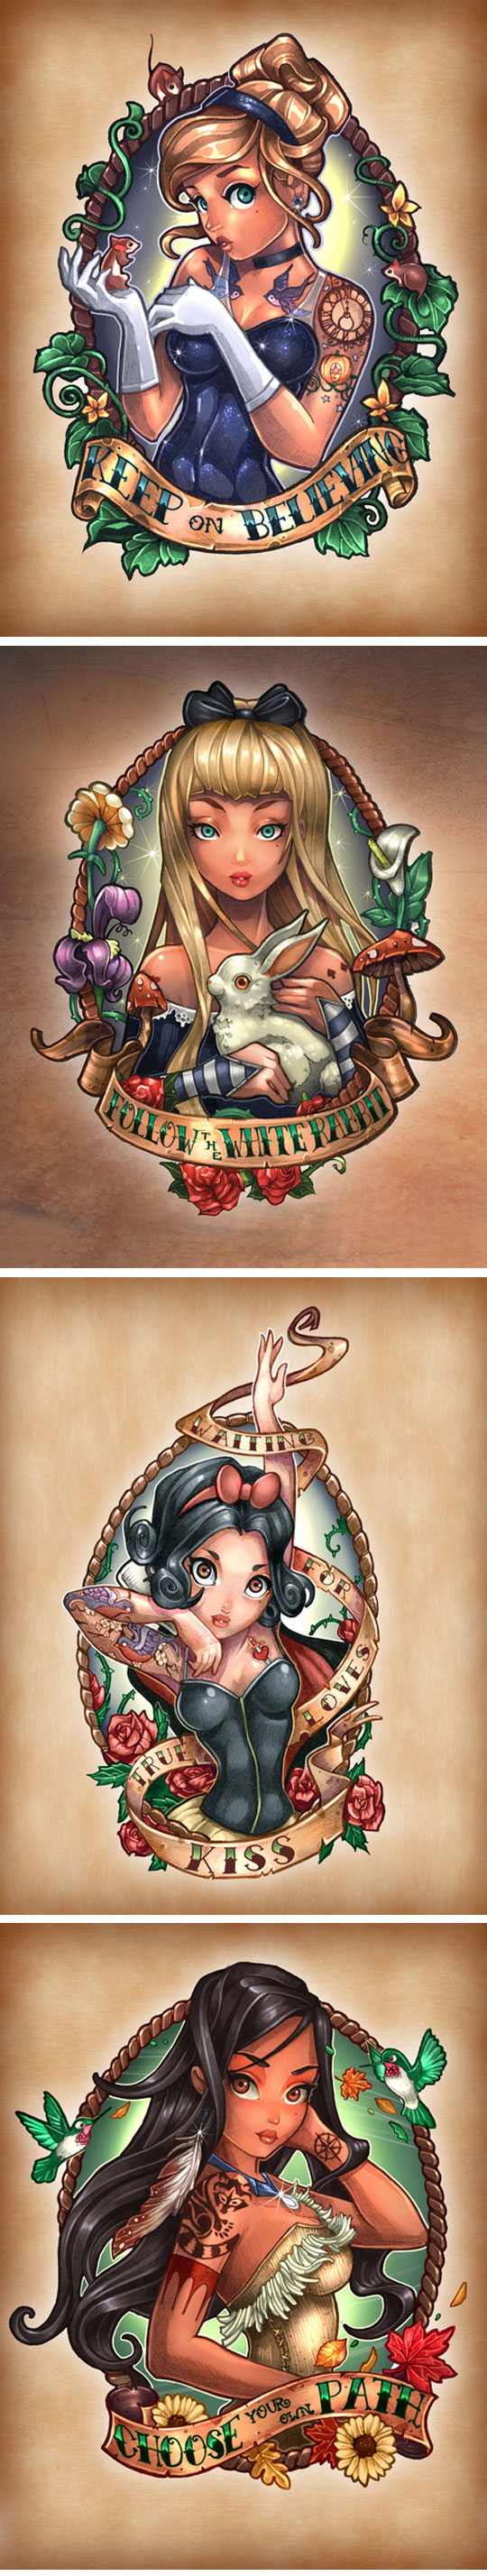 cool-Disney-Princesses-tattoo